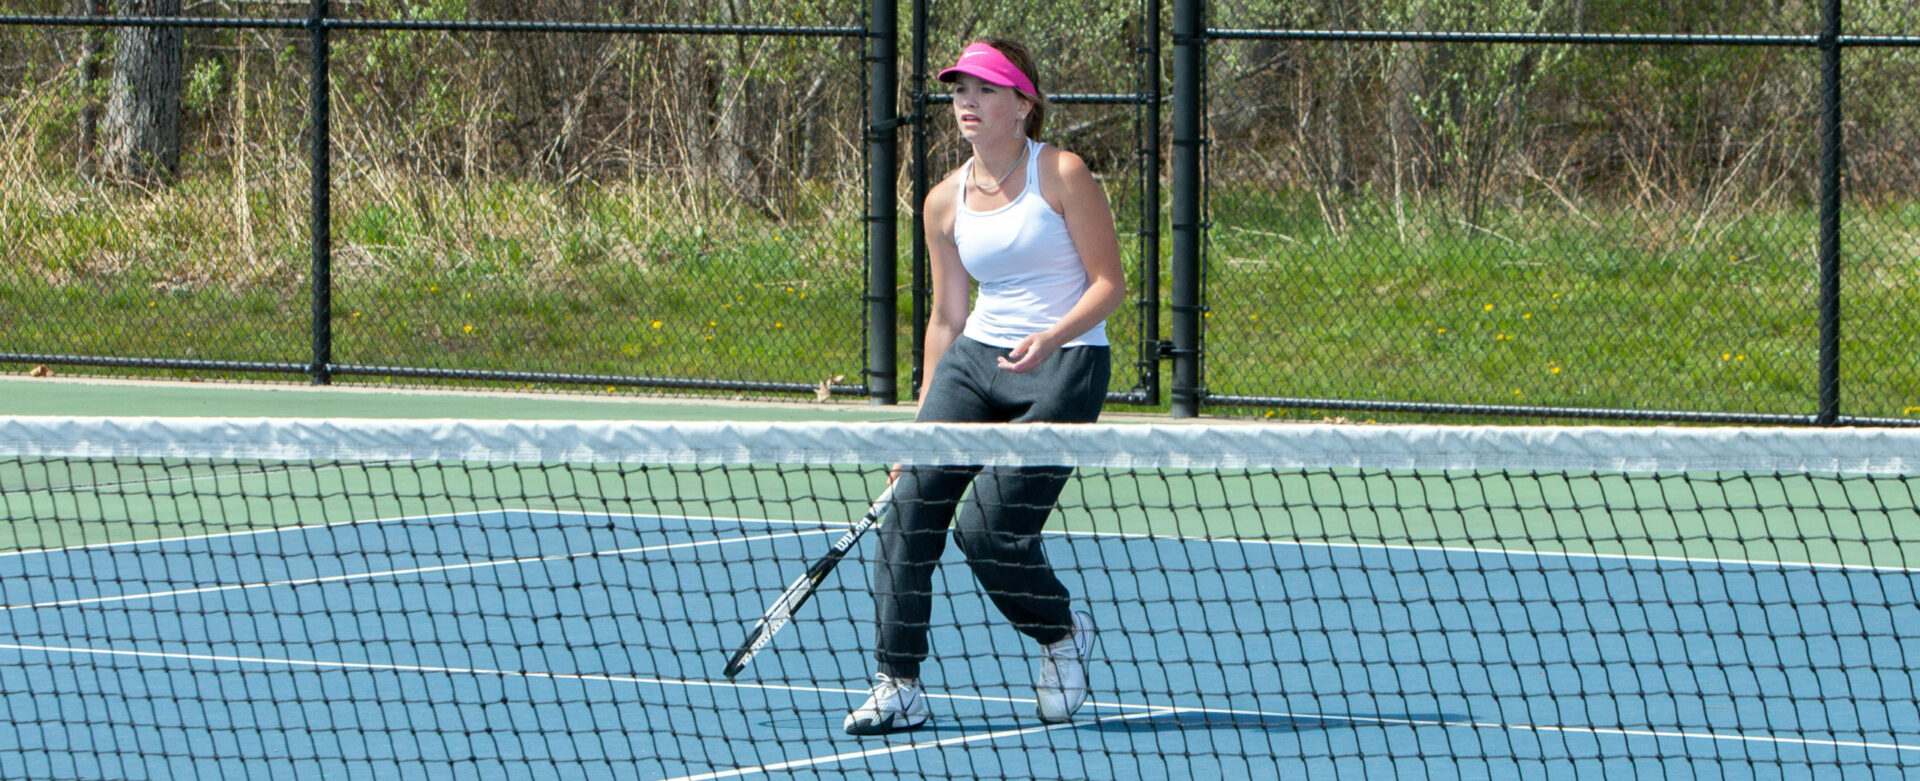 Fruitport's Blakeman a surprise No. 1 singles champ at GMAA tennis tournament; Norse defend team title in a close finish